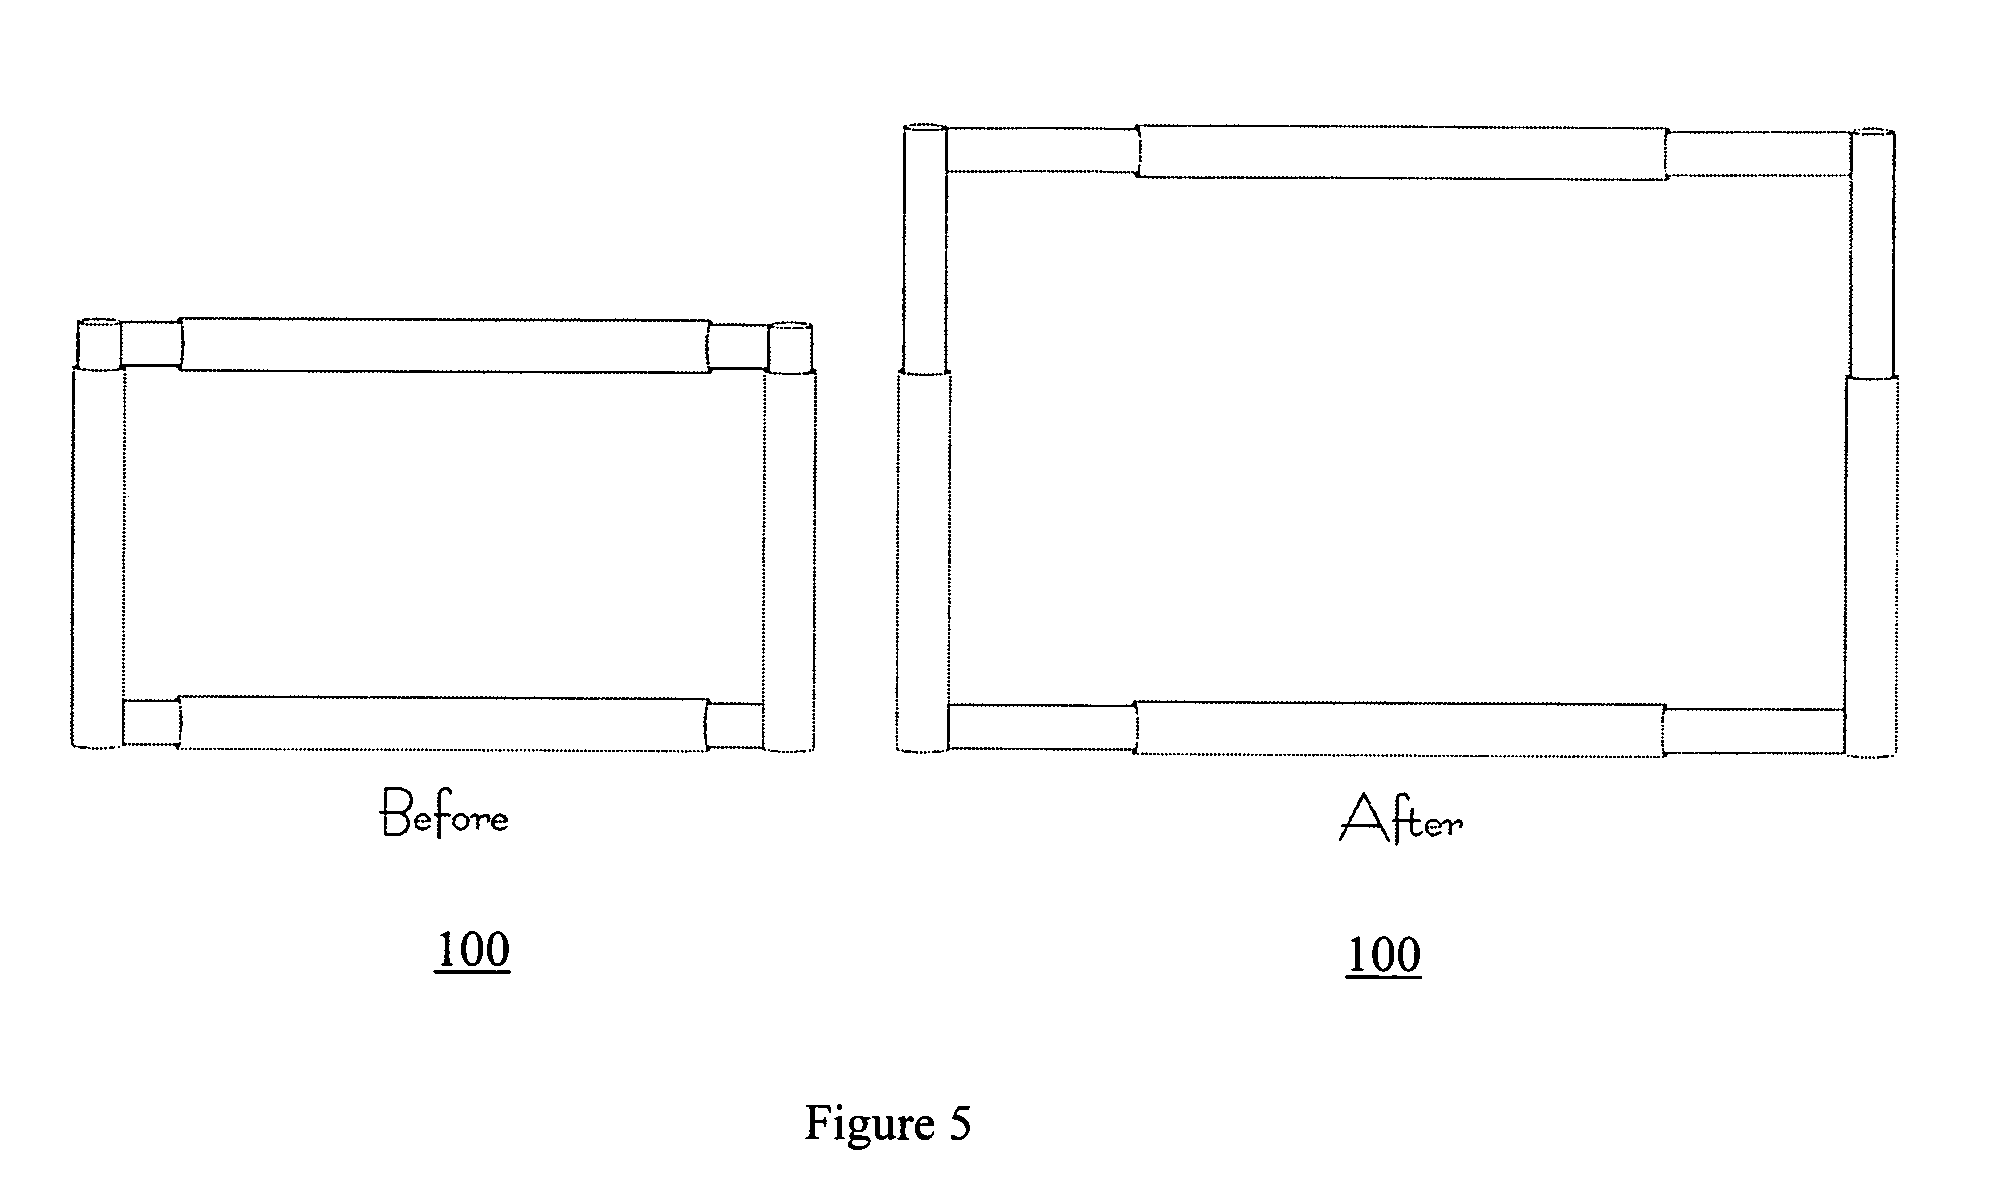 expandable display illustration from Google patent US7268491B2